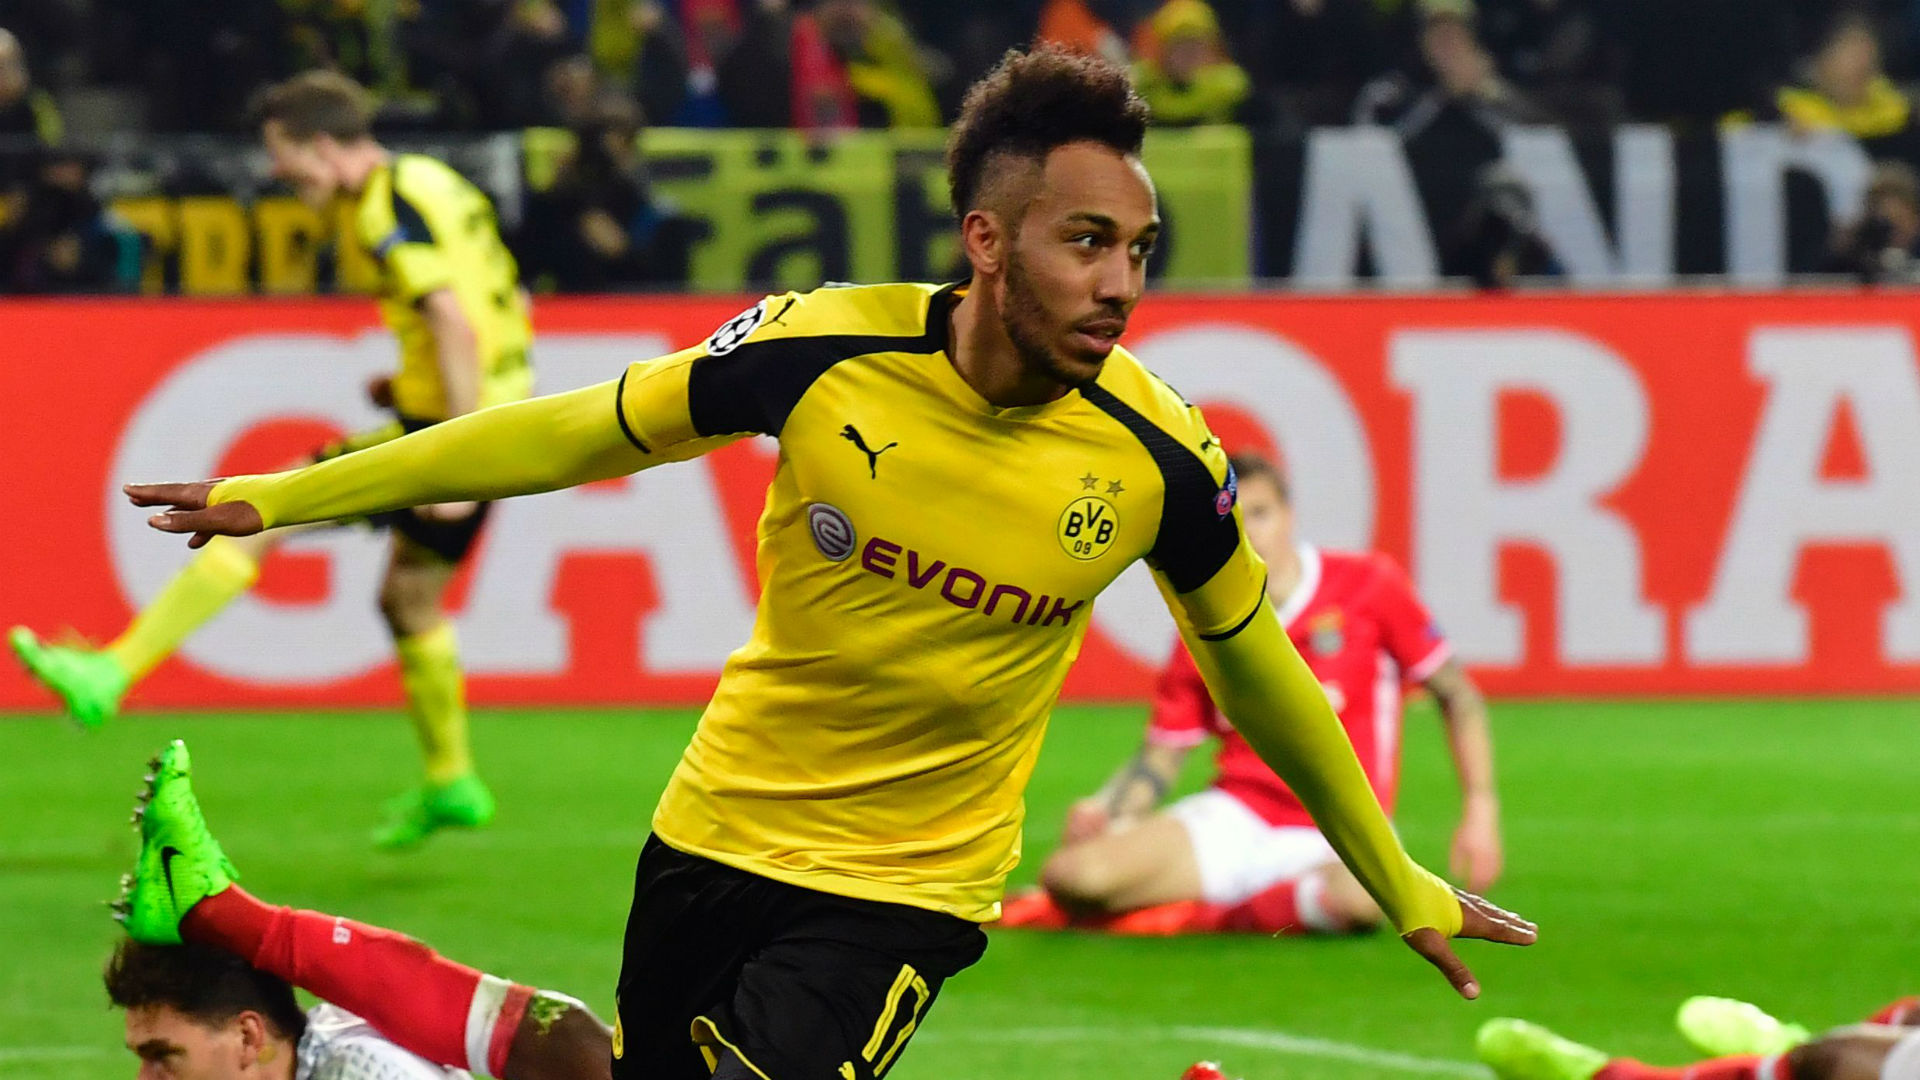 Aubameyang Picture: Borussia Dortmund 4-0 Benfica: Aubameyang And Pulisic See